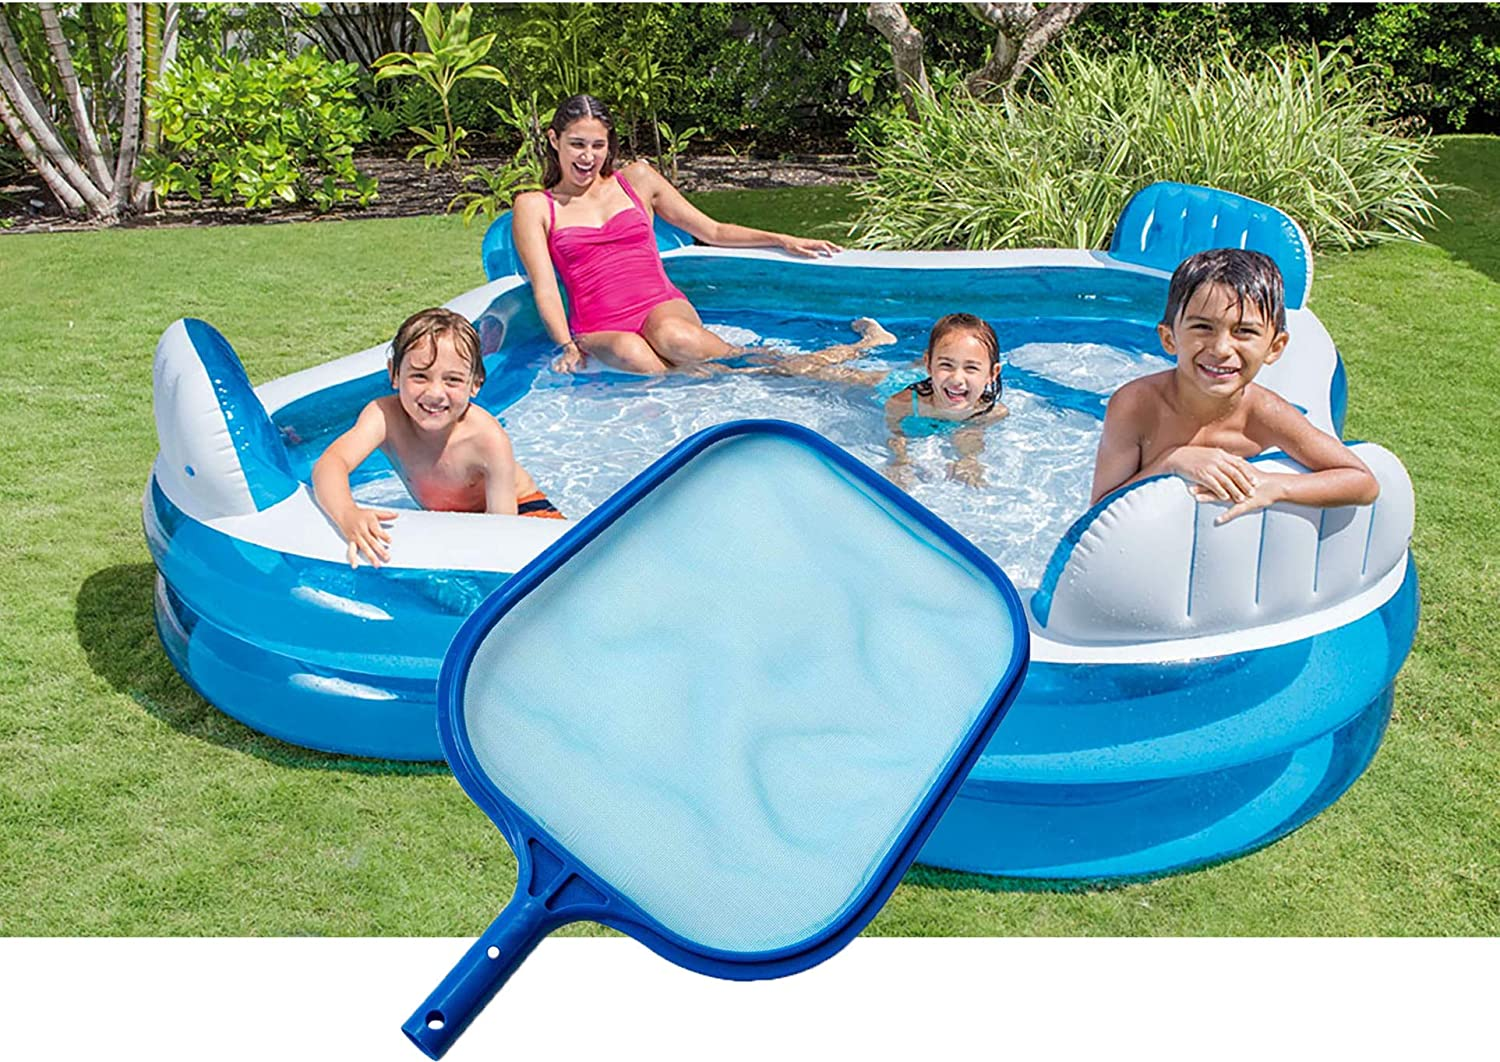 DEH Swimming Pool Leaf Net Fine Mesh Pools Spas Skimmer for Hot Tub Fountains Blue